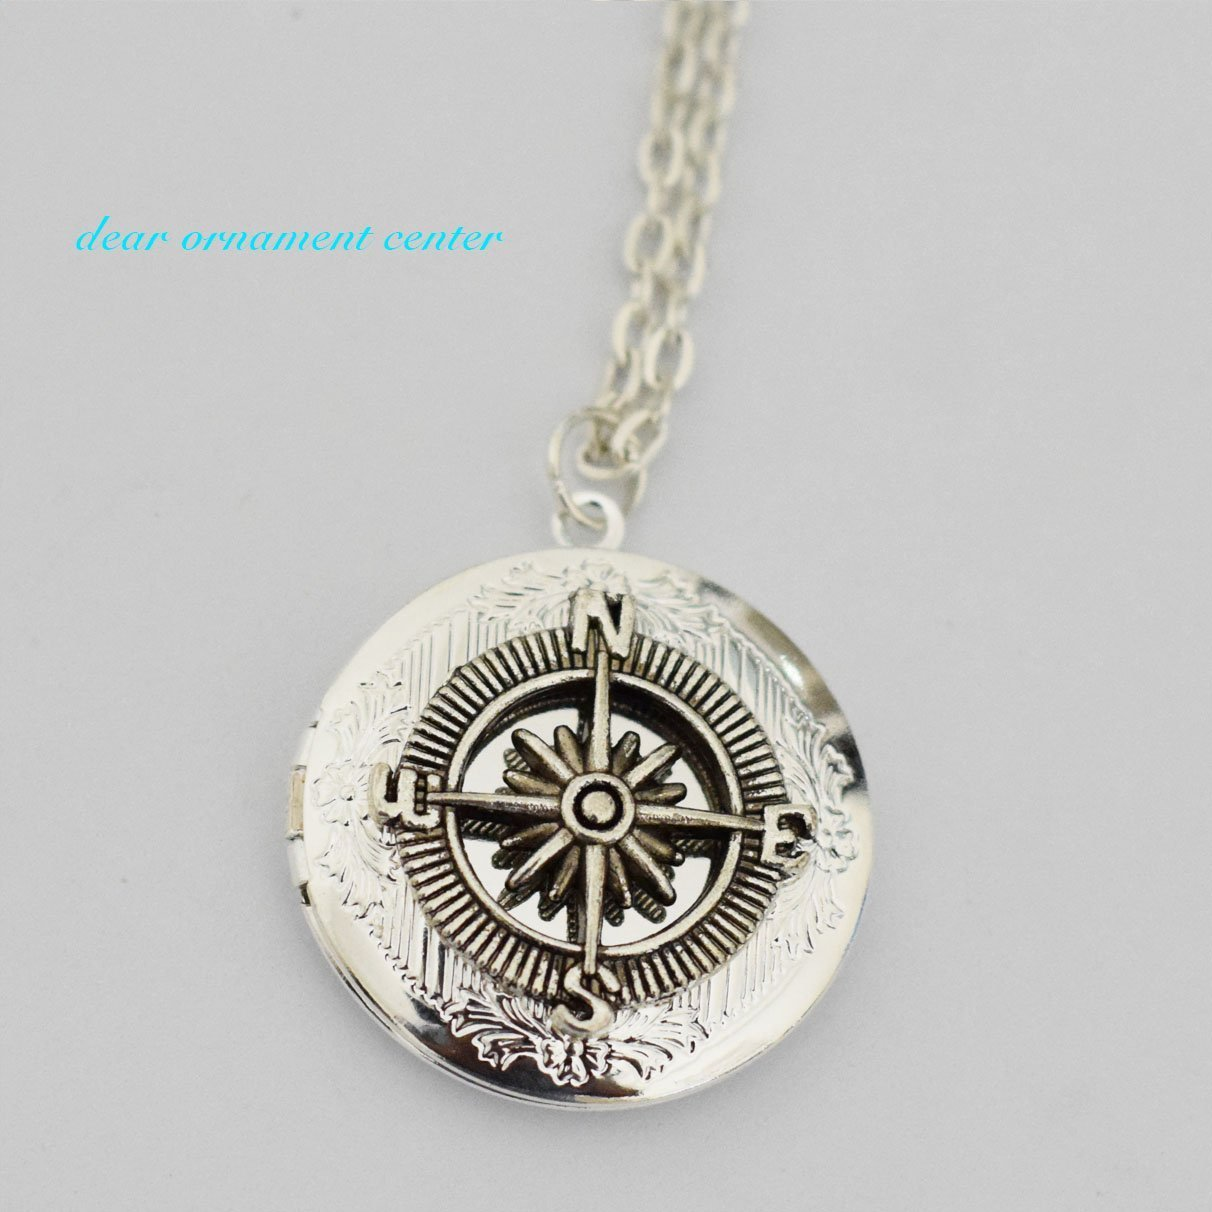 pmr inch sterling sunflower flower necklace silver bling pendant jewelry oval lockets locket engraved secret